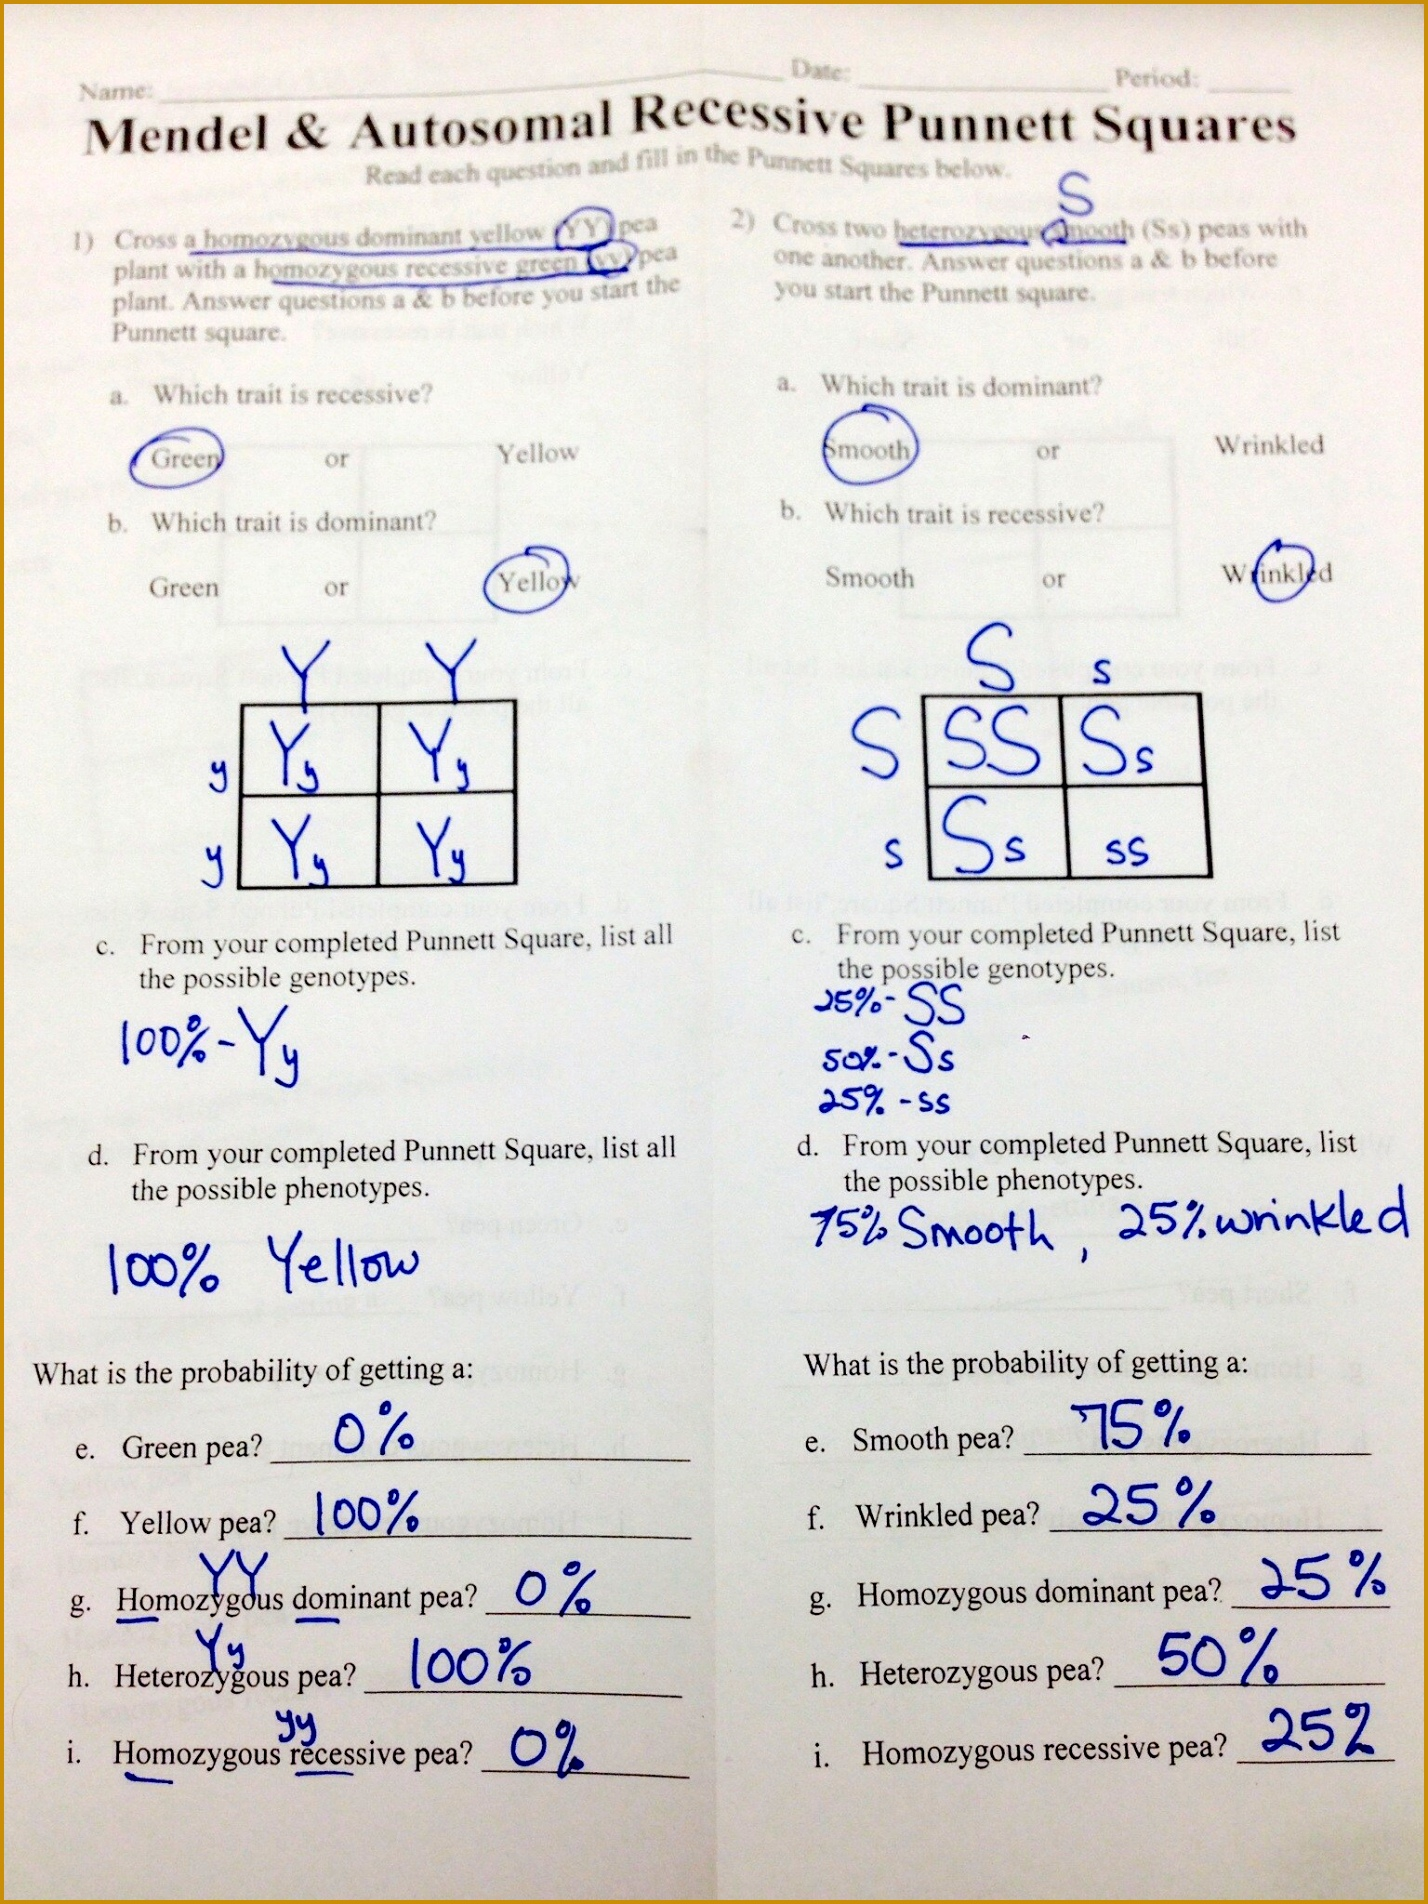 5 How The Earth Was Made Worksheet Answers